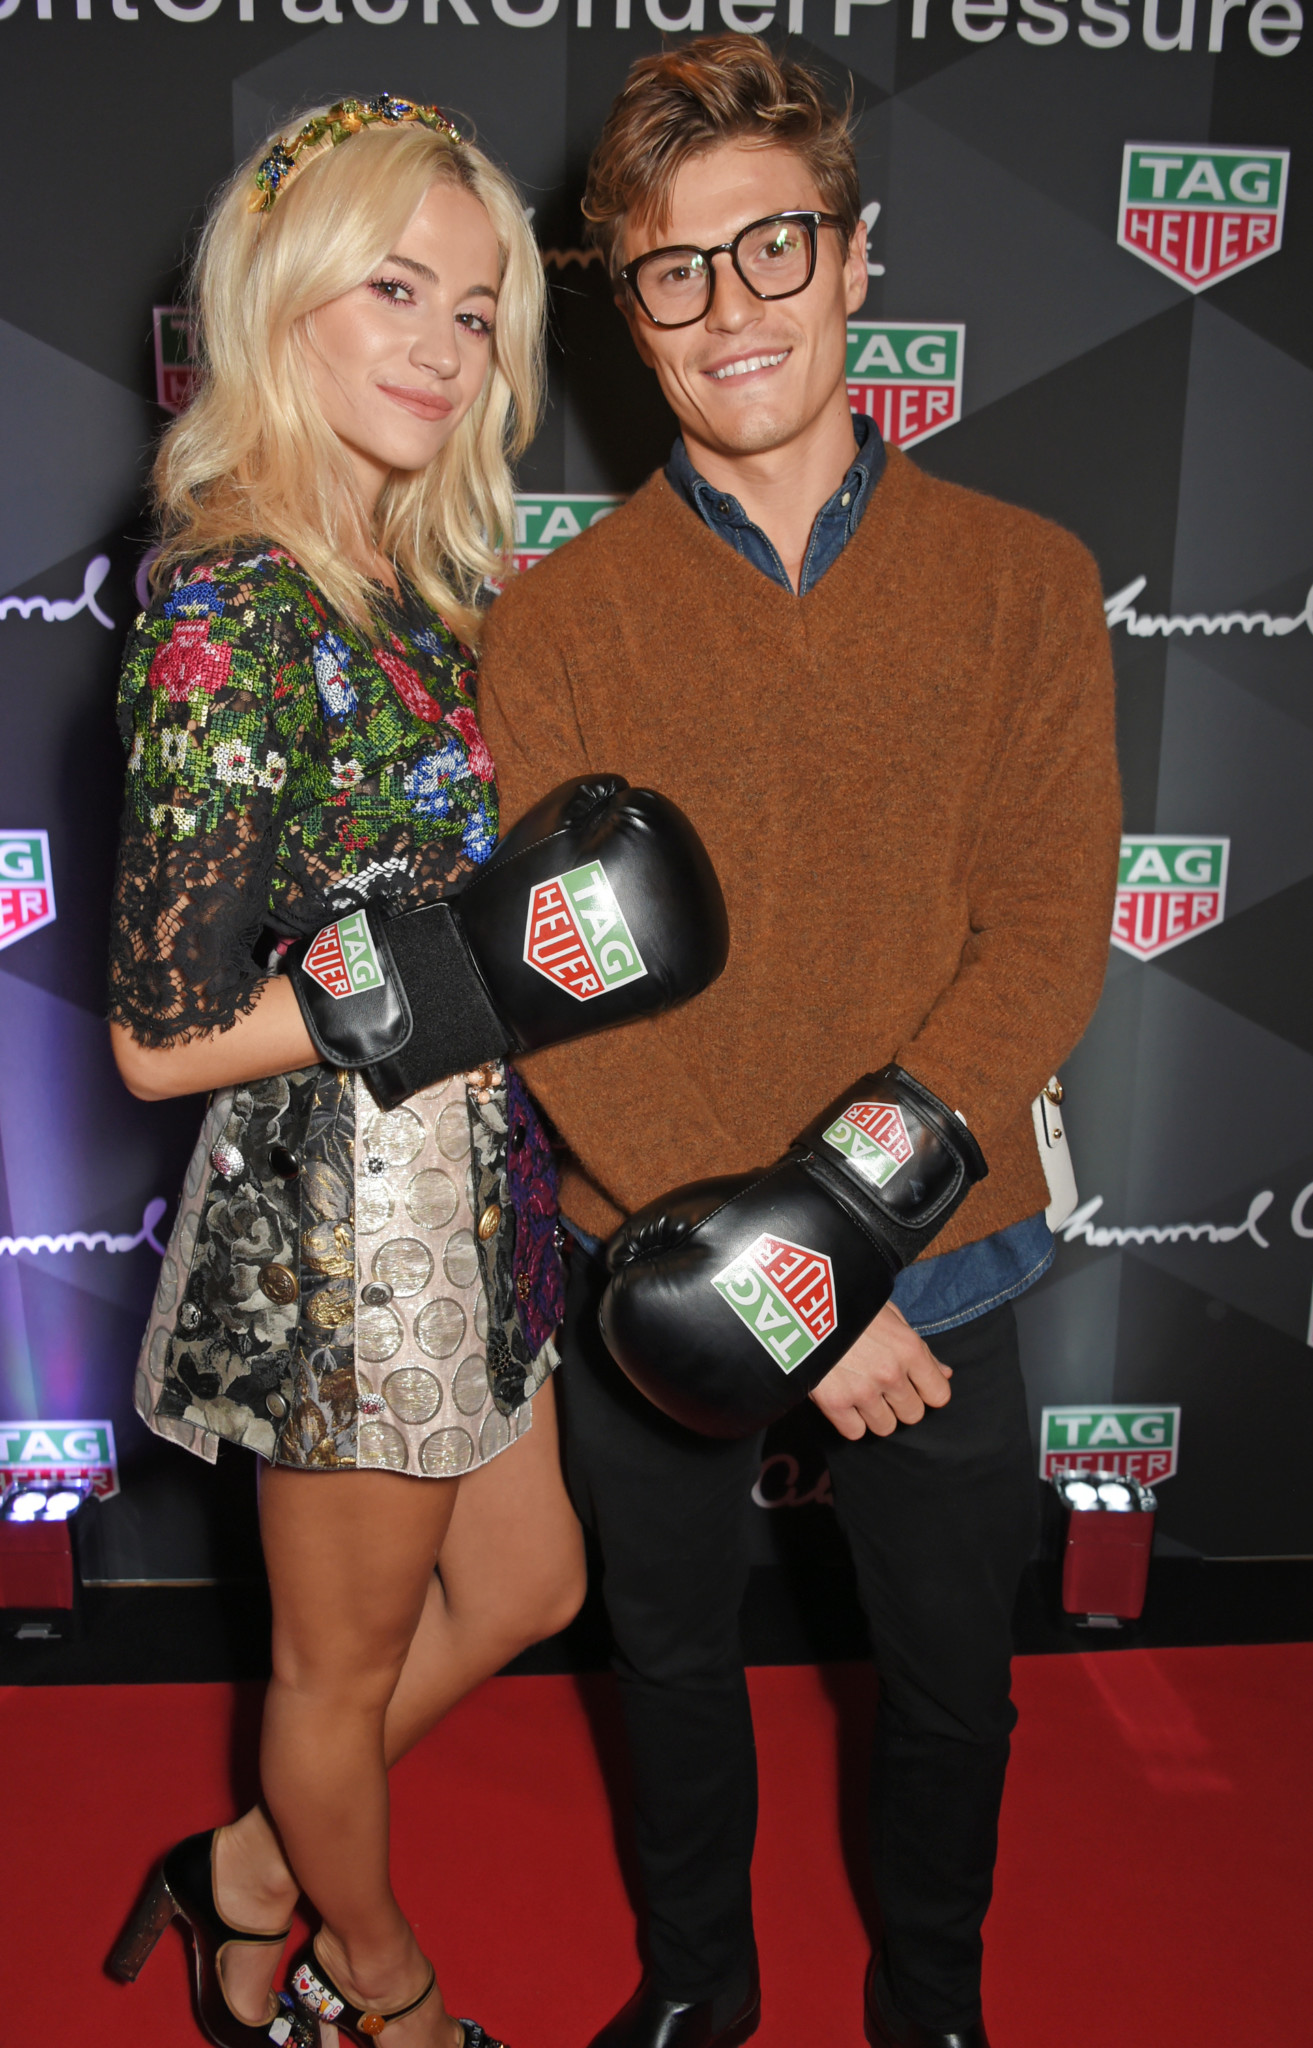 LONDON, ENGLAND - OCTOBER 10:  Pixie Lott (L) and Oliver Cheshire attend the launch of the TAG Heuer Muhammad Ali Limited Edition Timepieces at BXR Gym on October 10, 2017 in London, England.  Pic Credit: Dave Benett